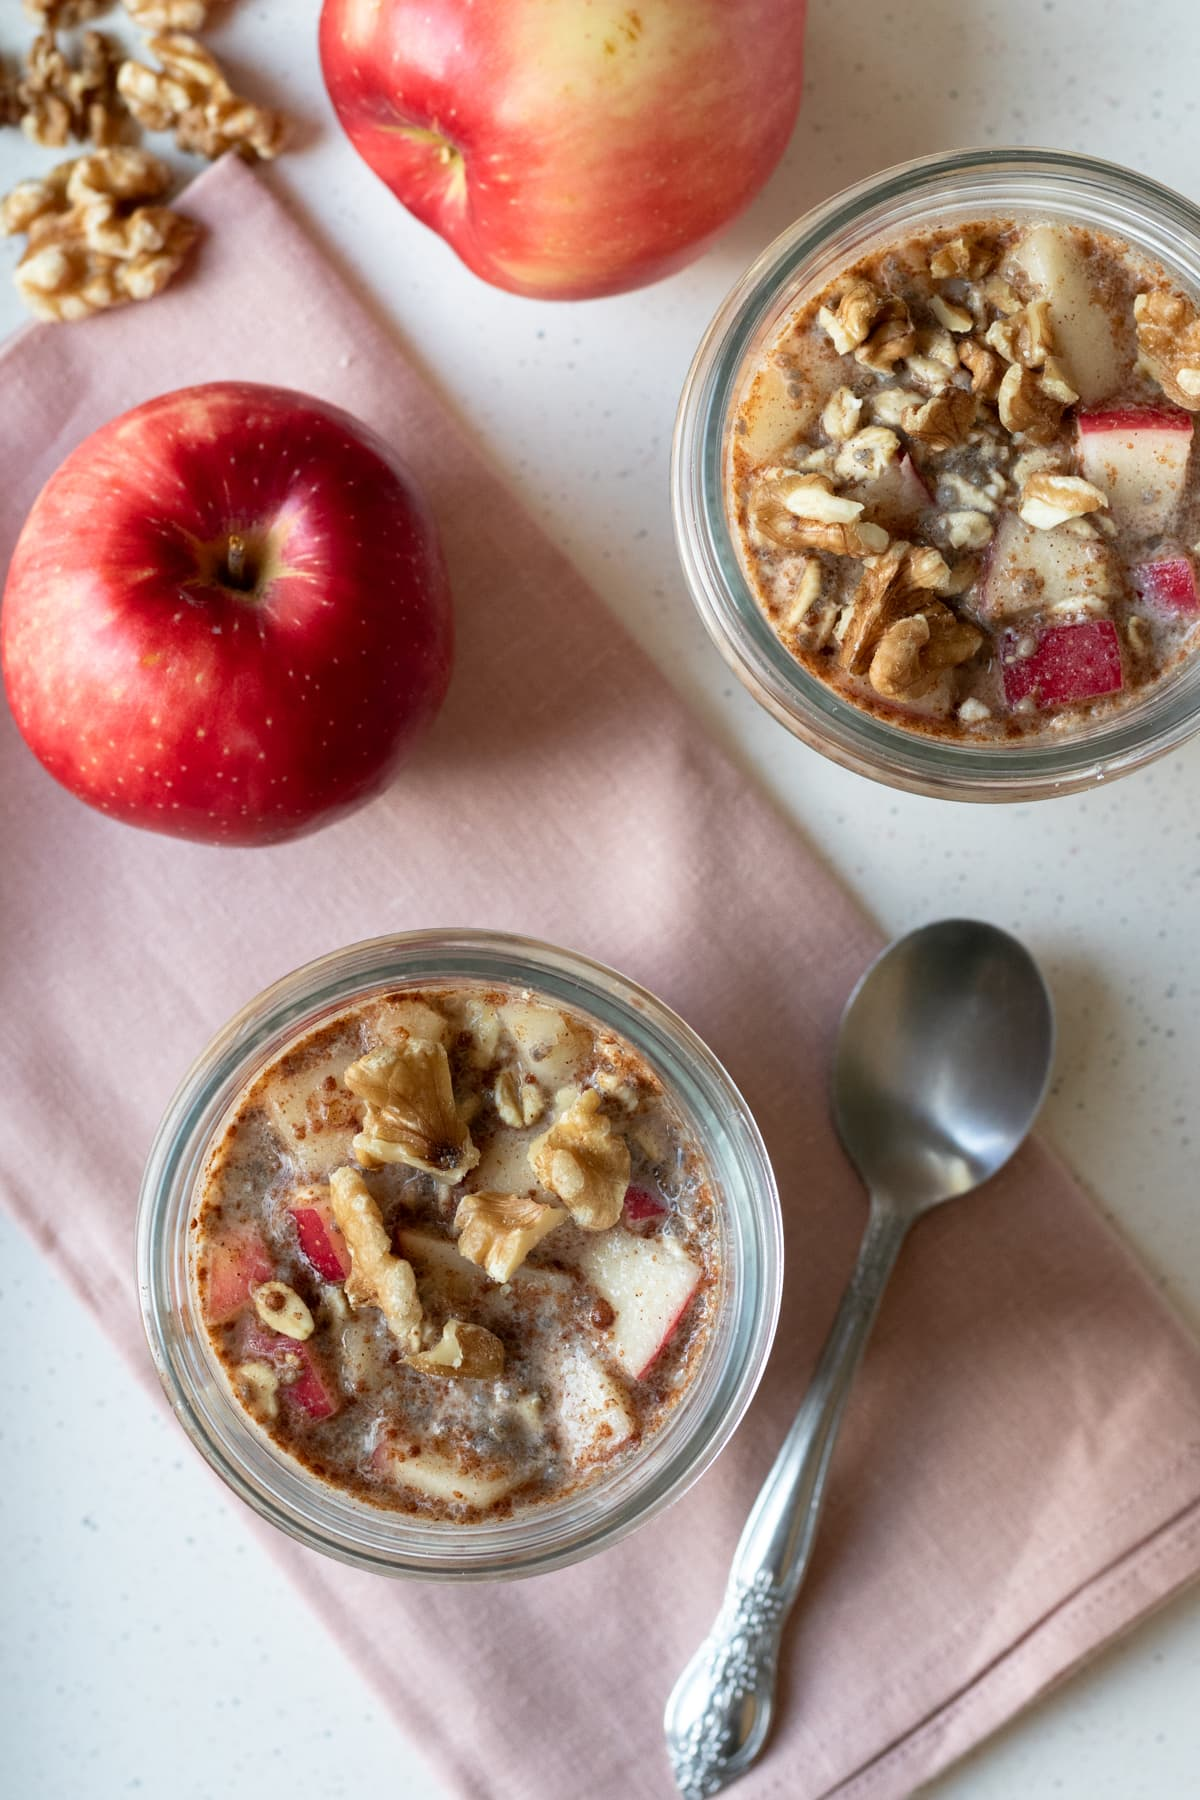 two jars filled with overnight oats that have already chilled.